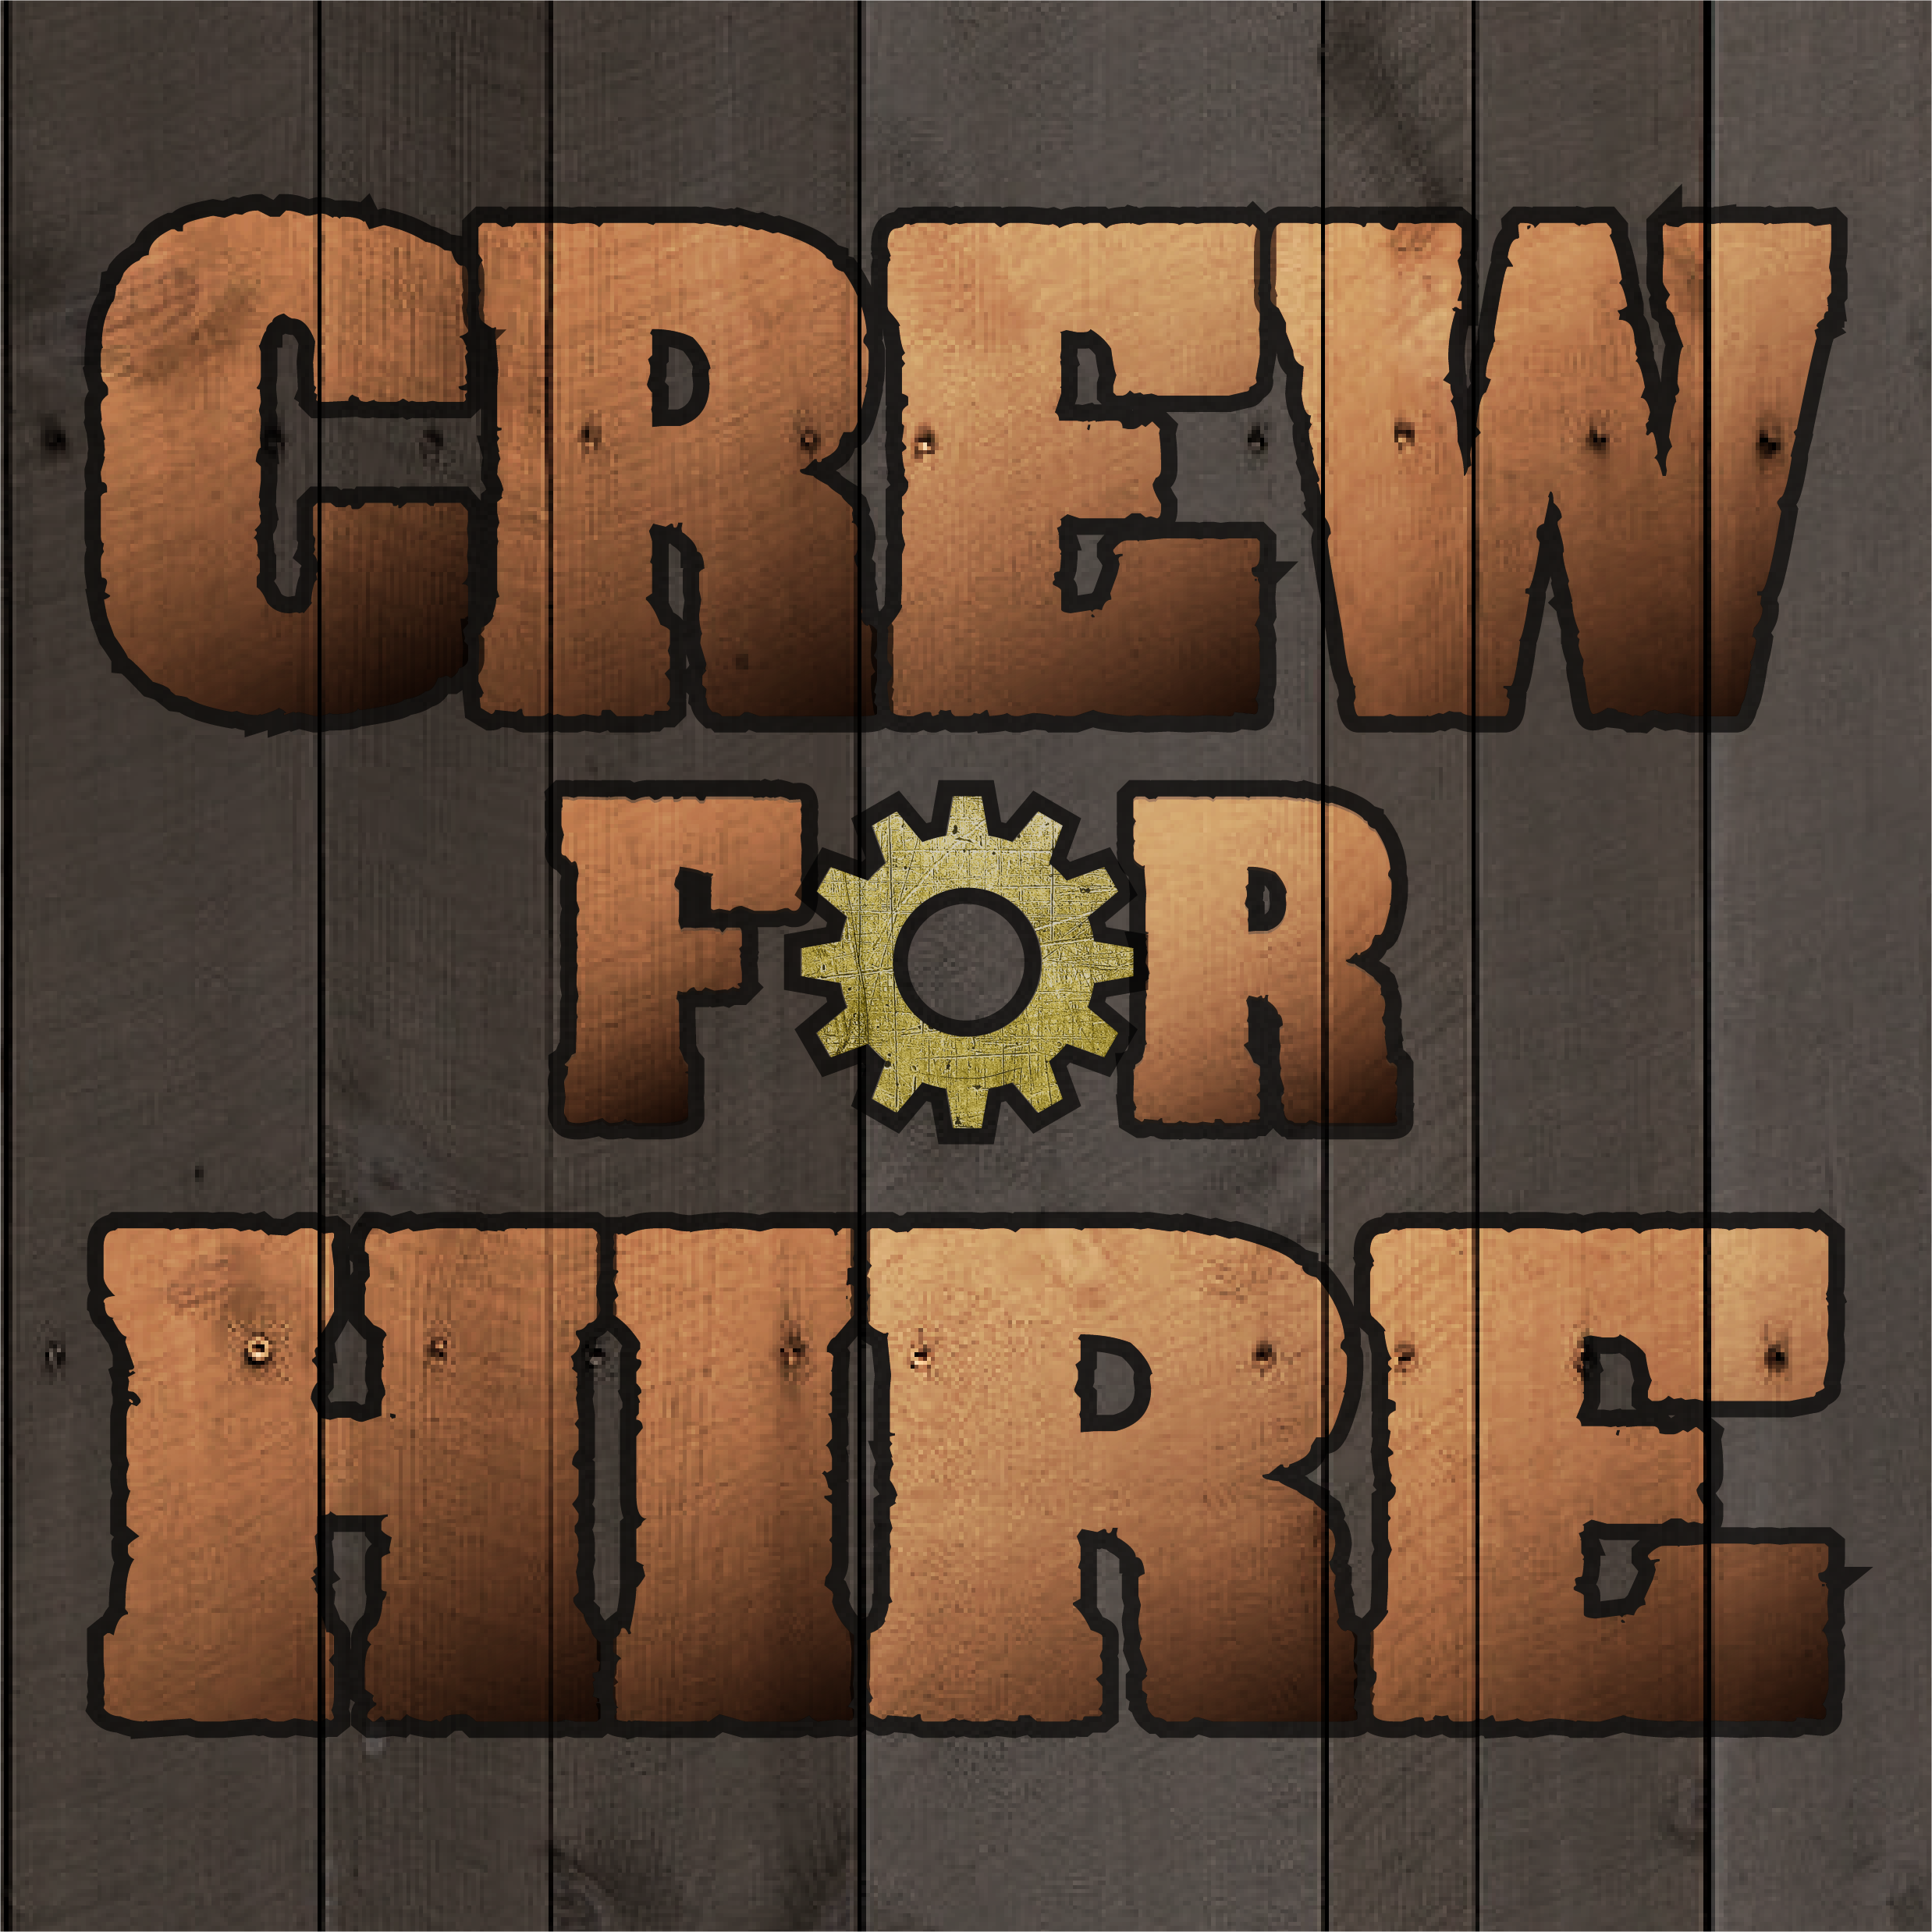 Crew for Hire